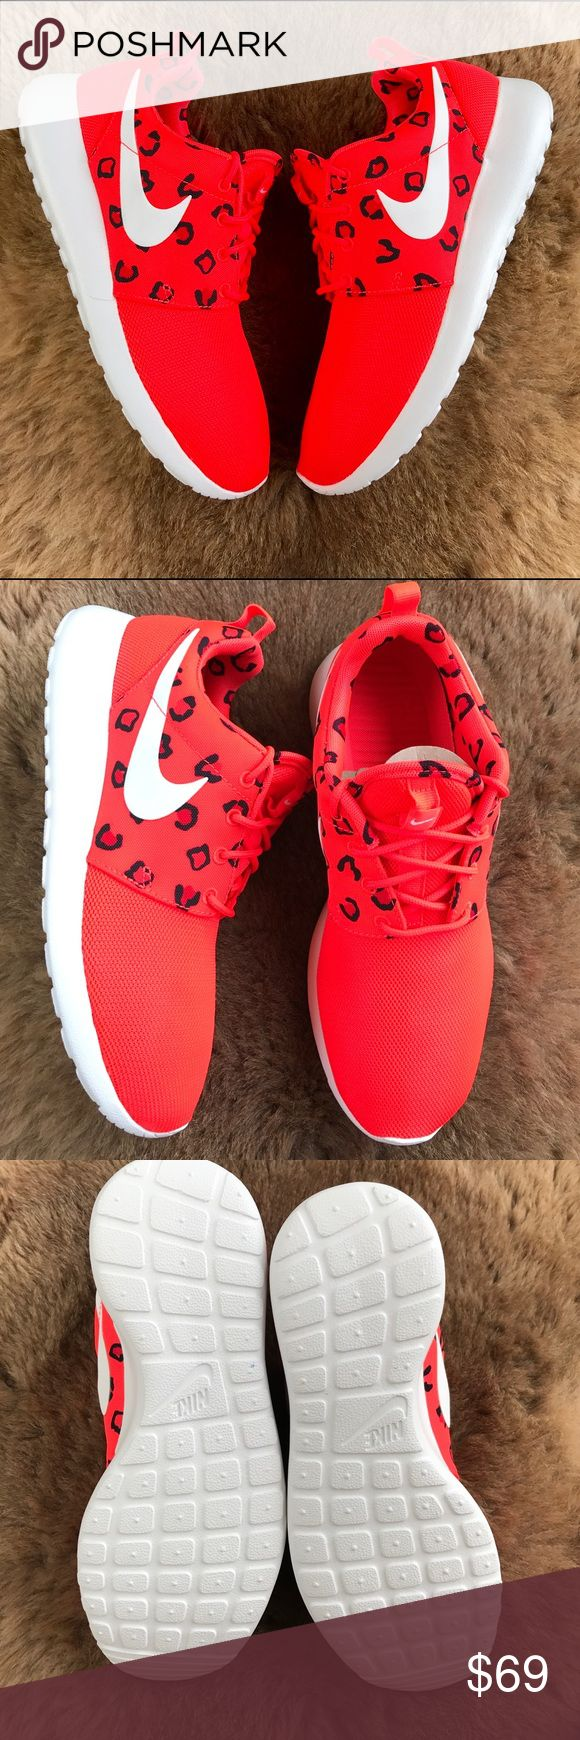 Fancy Kinkos Color Copies Price Per Page